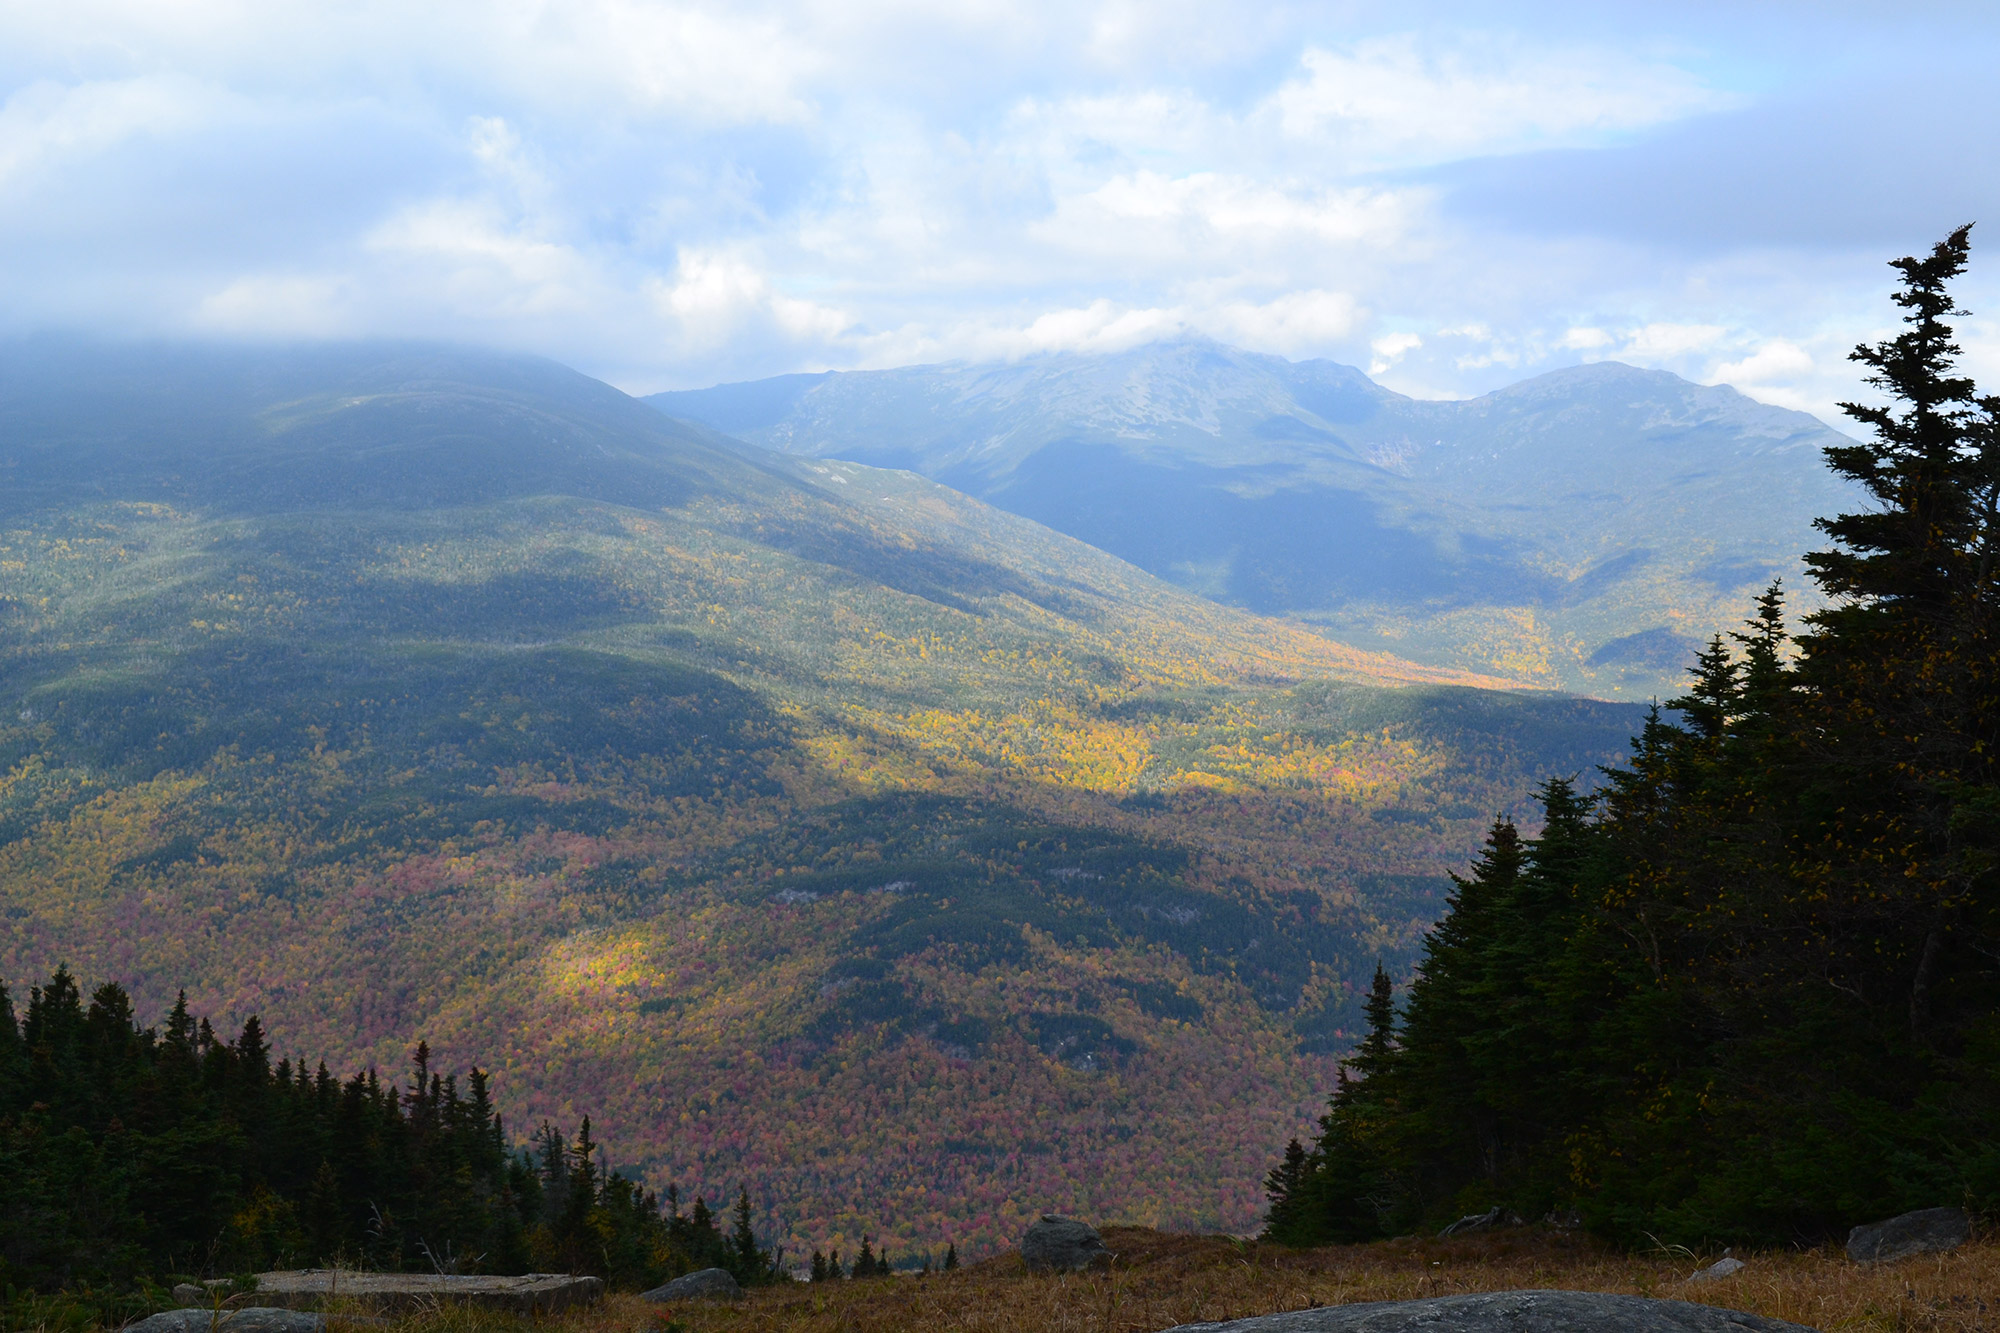 Fall foliage from near the top of Wildcat D. | Credit: Douglas Martland